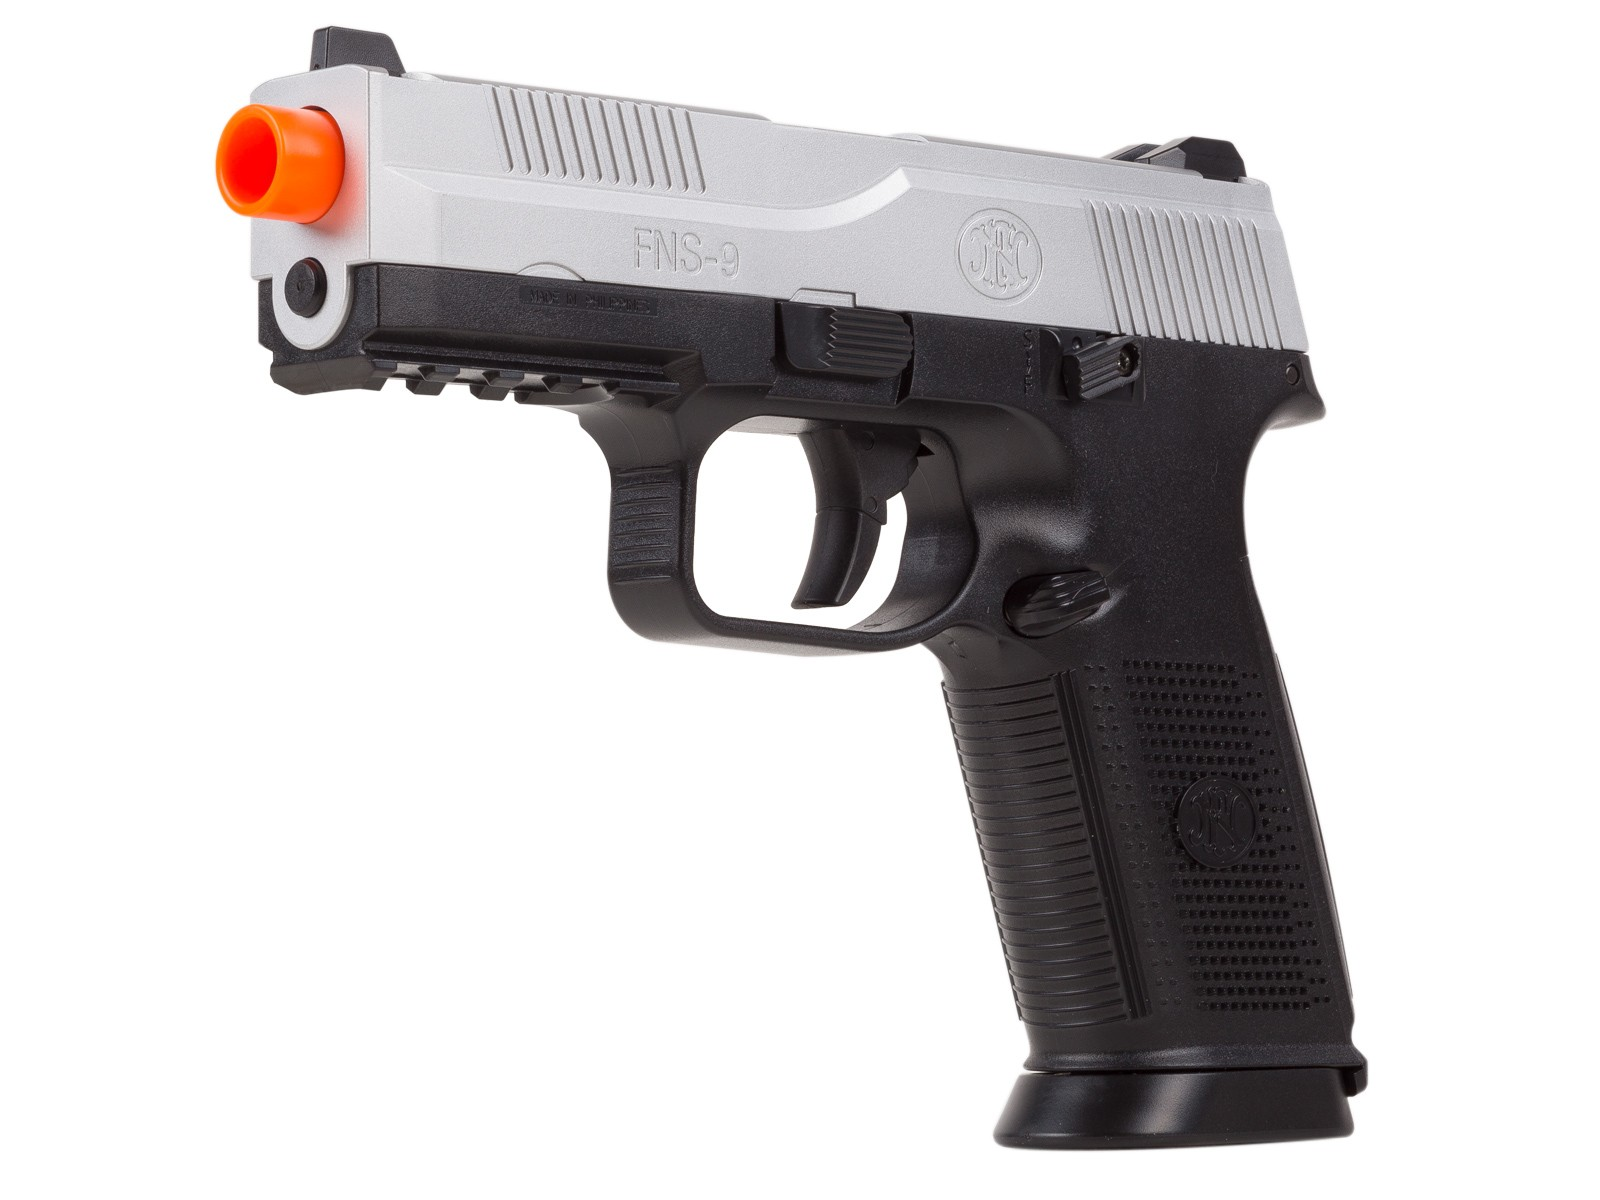 FN_Herstal_FNS9_Spring_Airsoft_Pistol_2Tone_SilverBlack_6mm